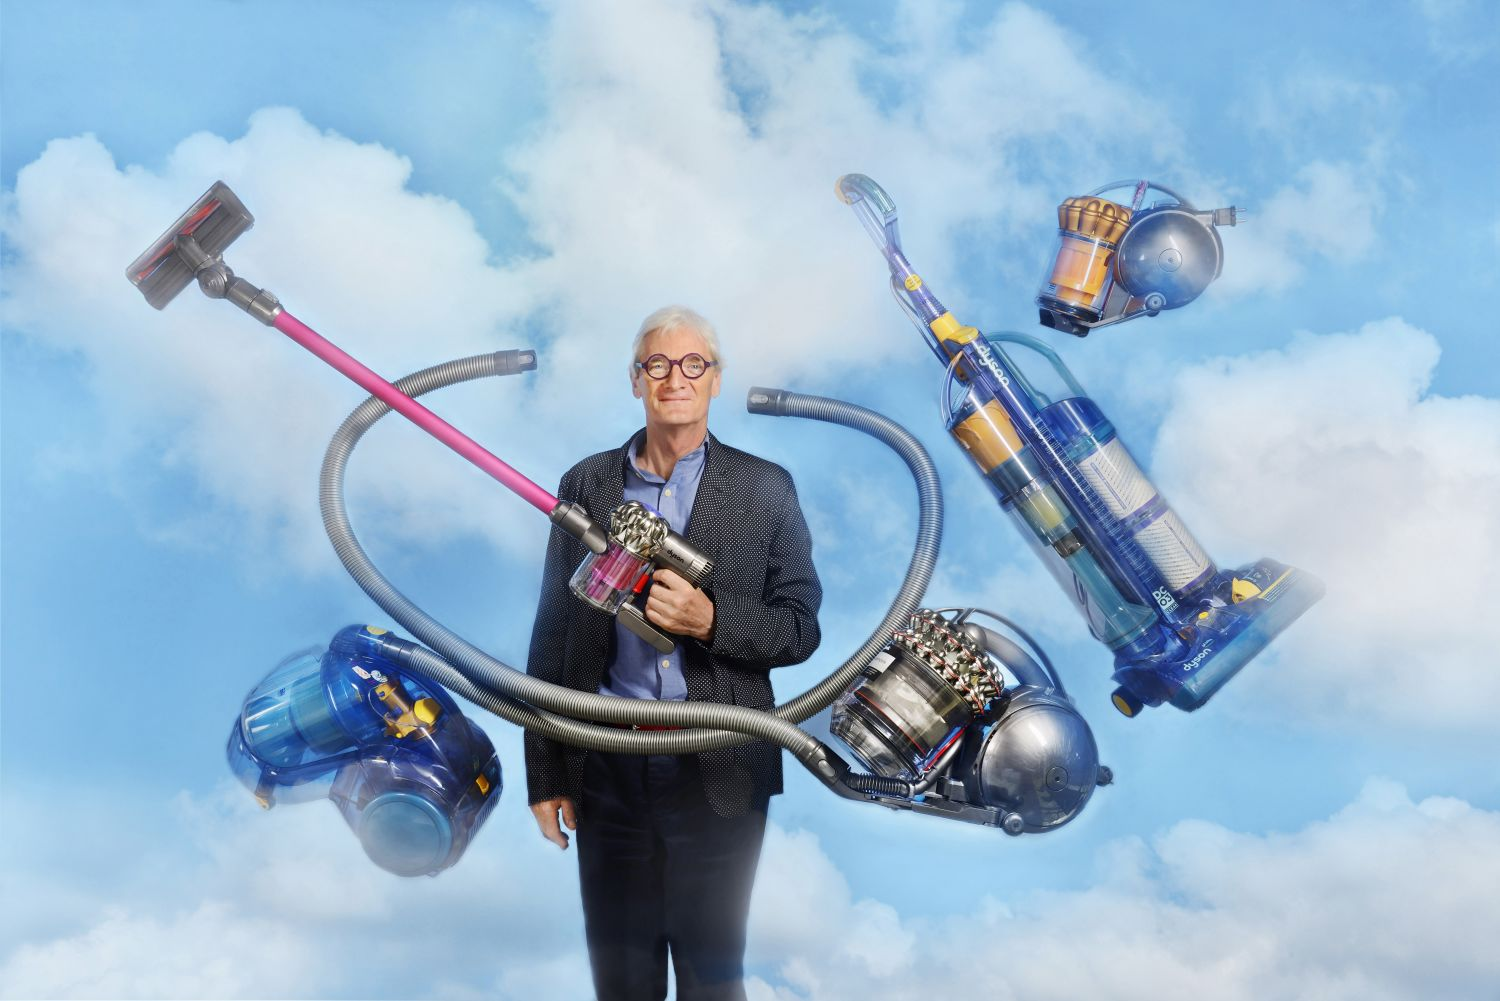 The One Common Thing Dyson Thinks Will Disappear from Homes